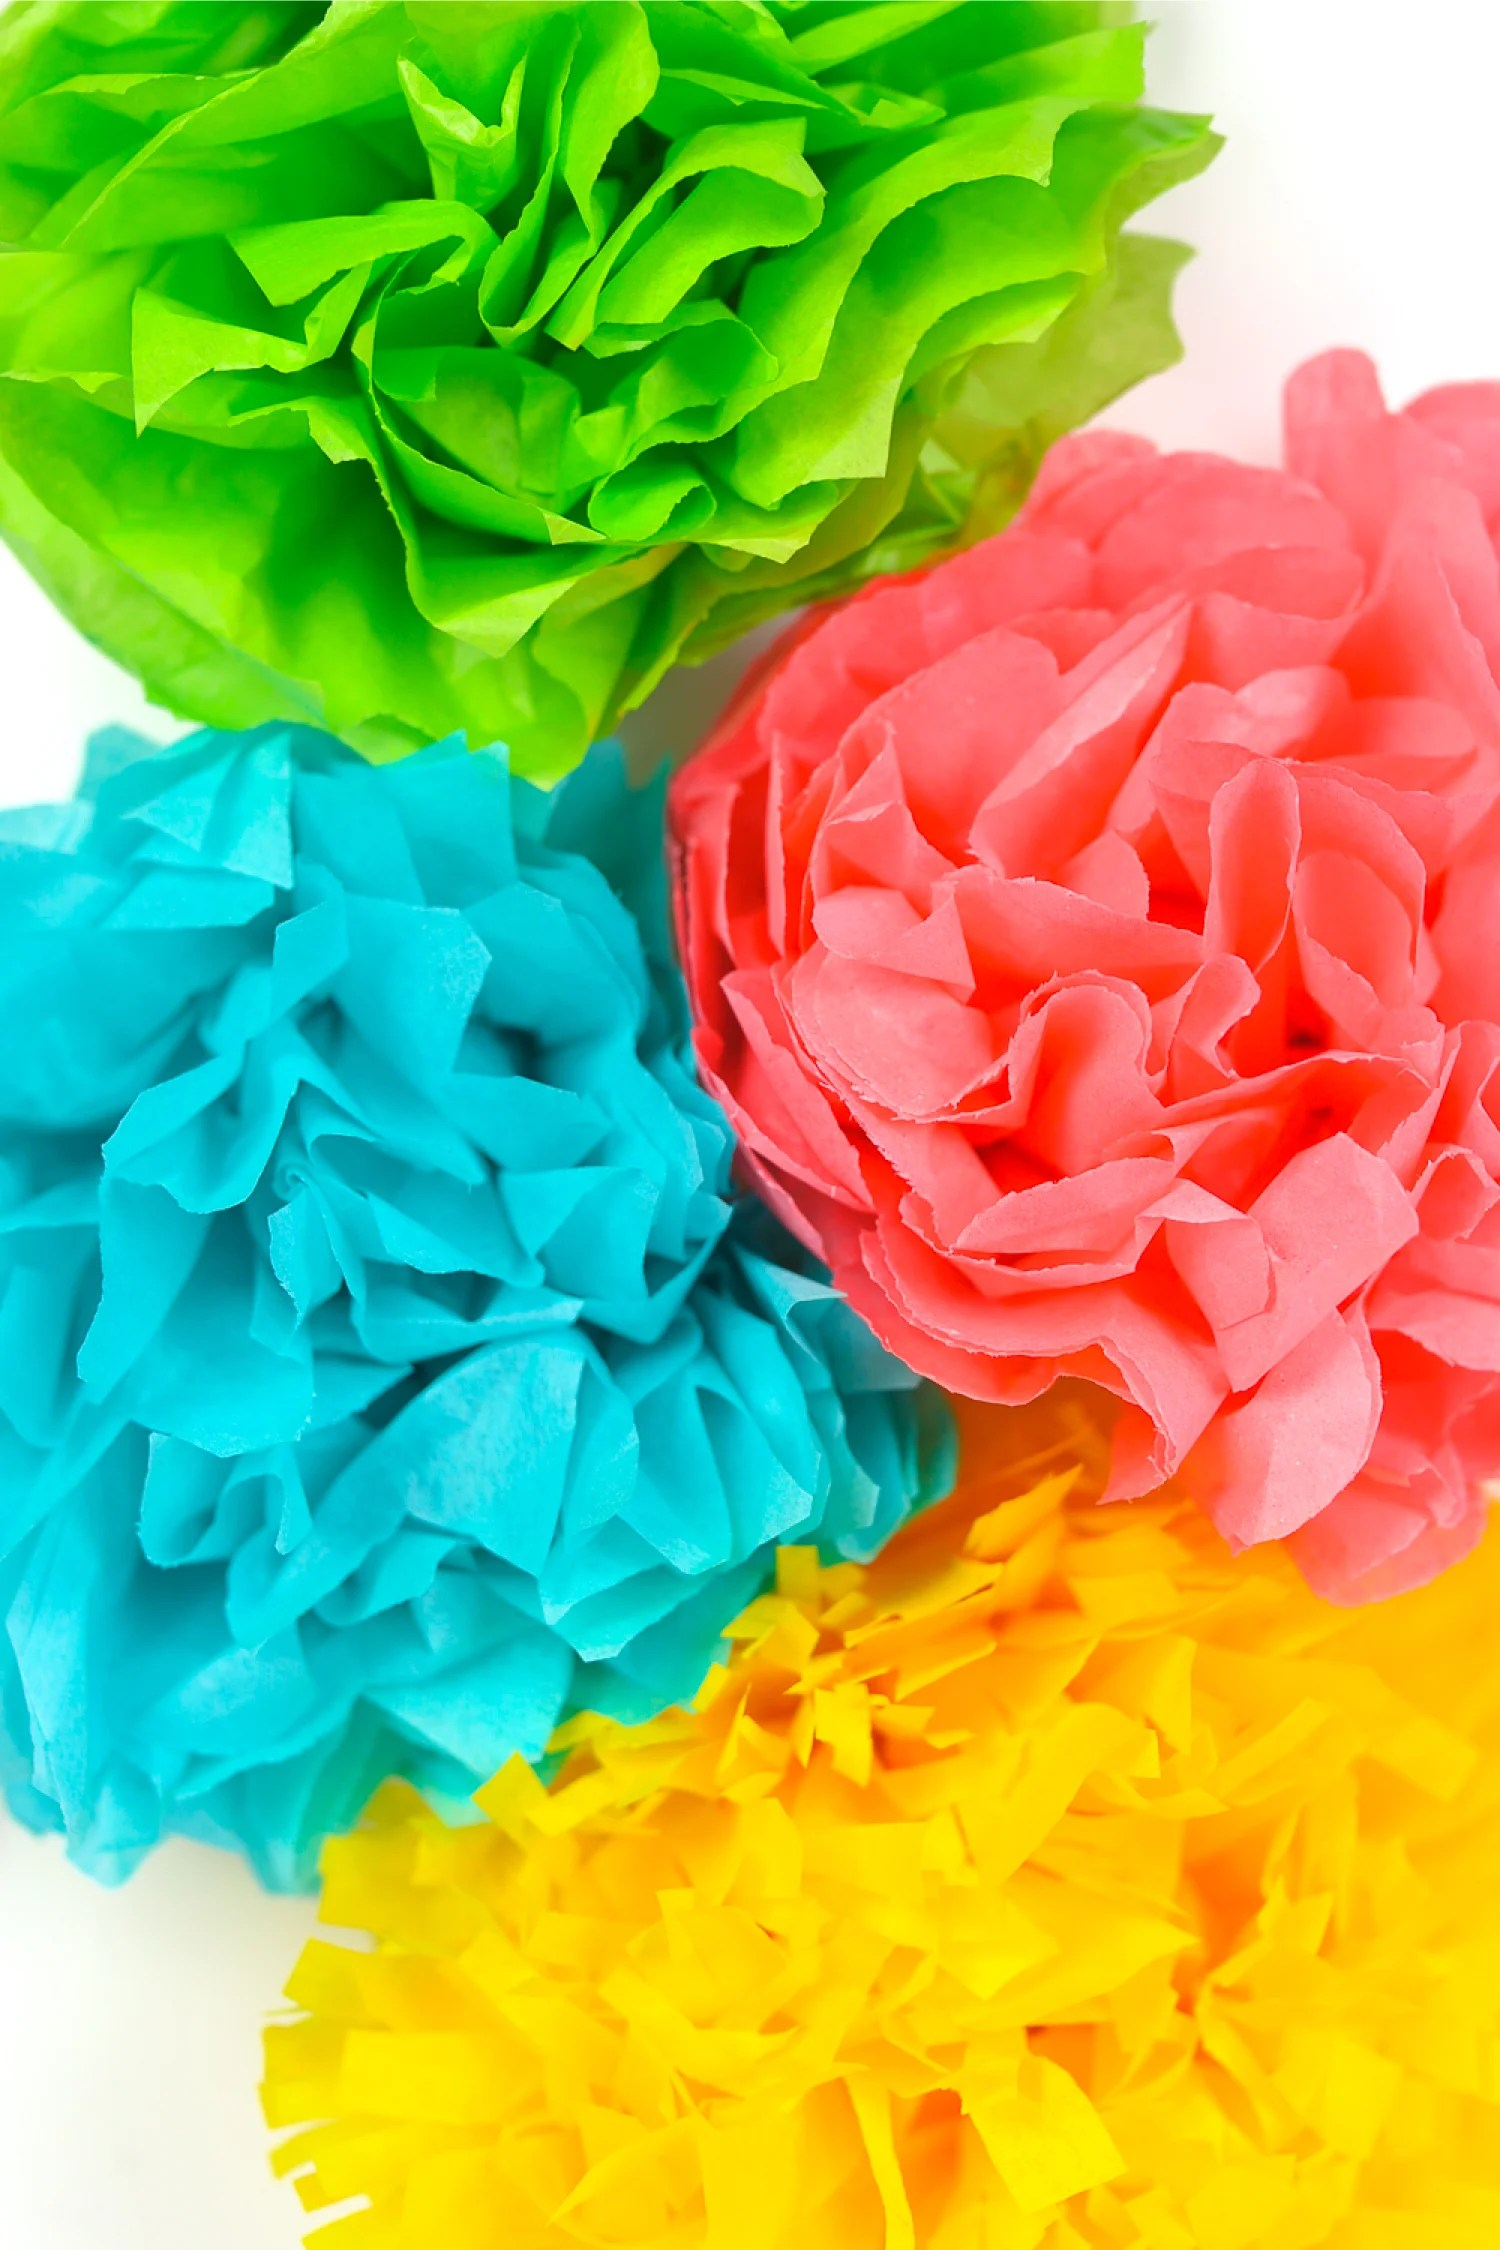 How to make quick flowers out of paper towels